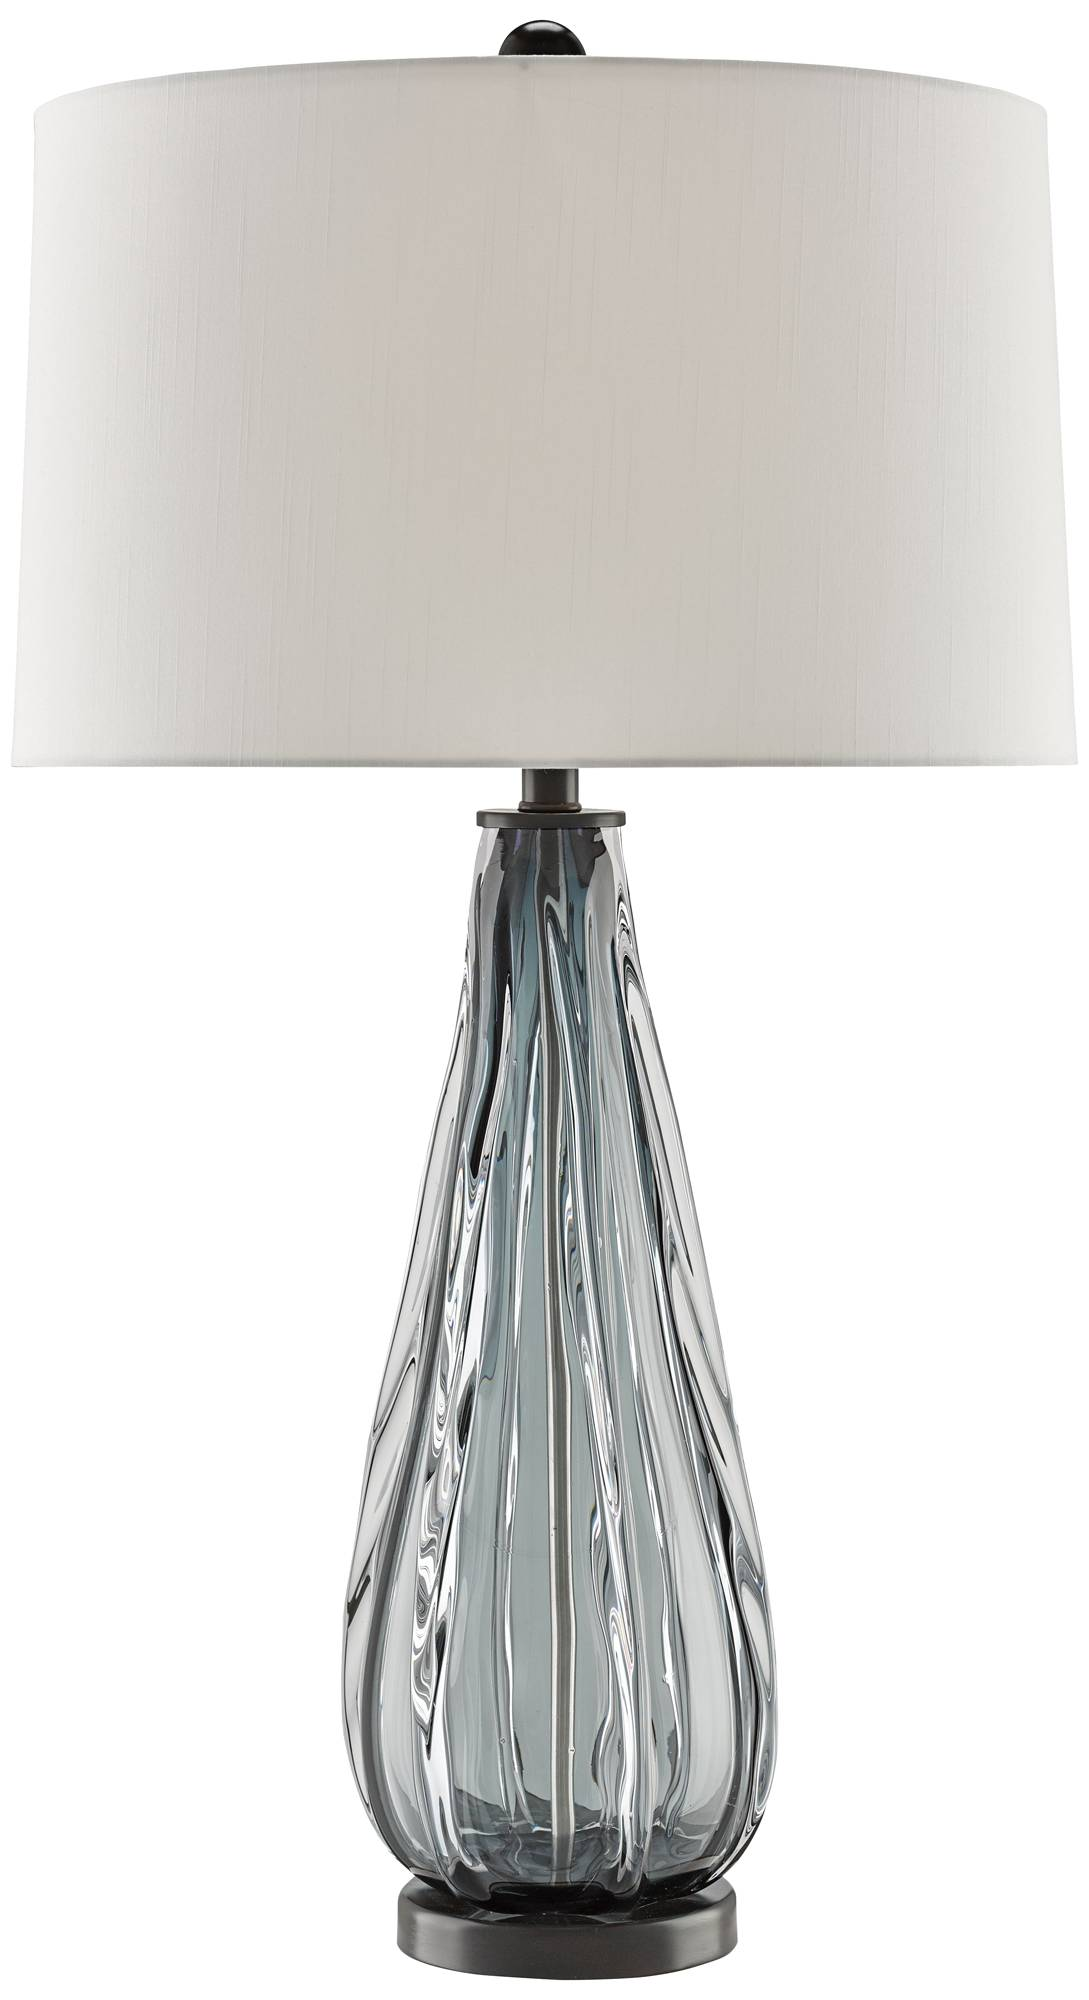 Currey and company nightcap blue gray glass table lamp 9r026 lamps plus